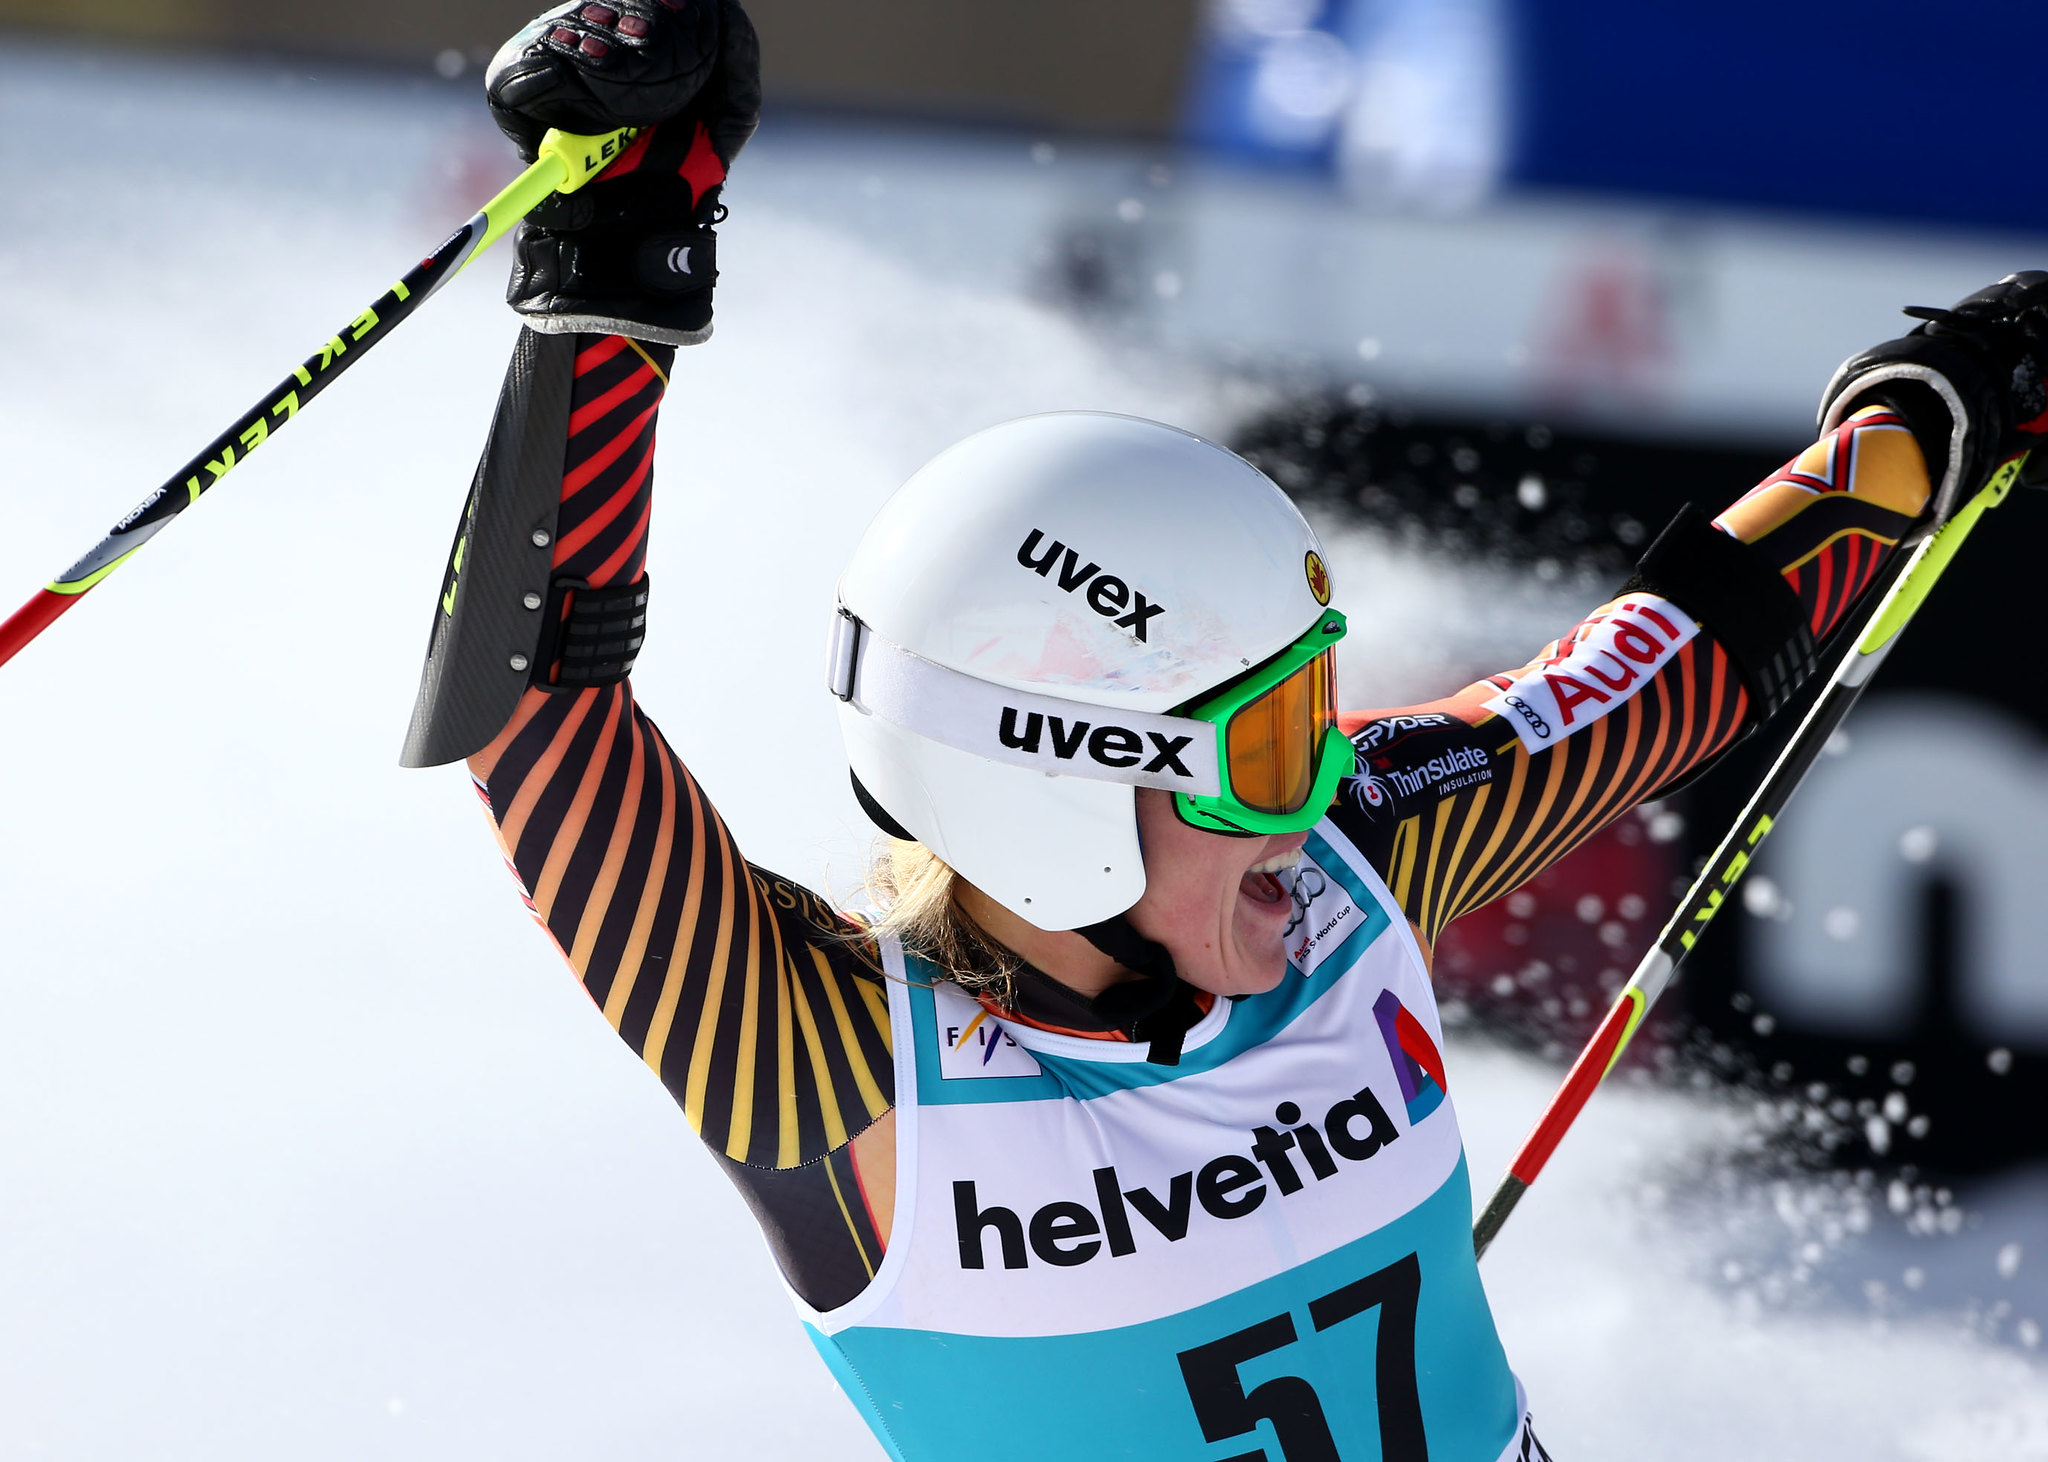 Erin celebrates a personal best 16th place finish in the giant slalom at the FIS Alpine World Cup in Beaver Creek, U.S.